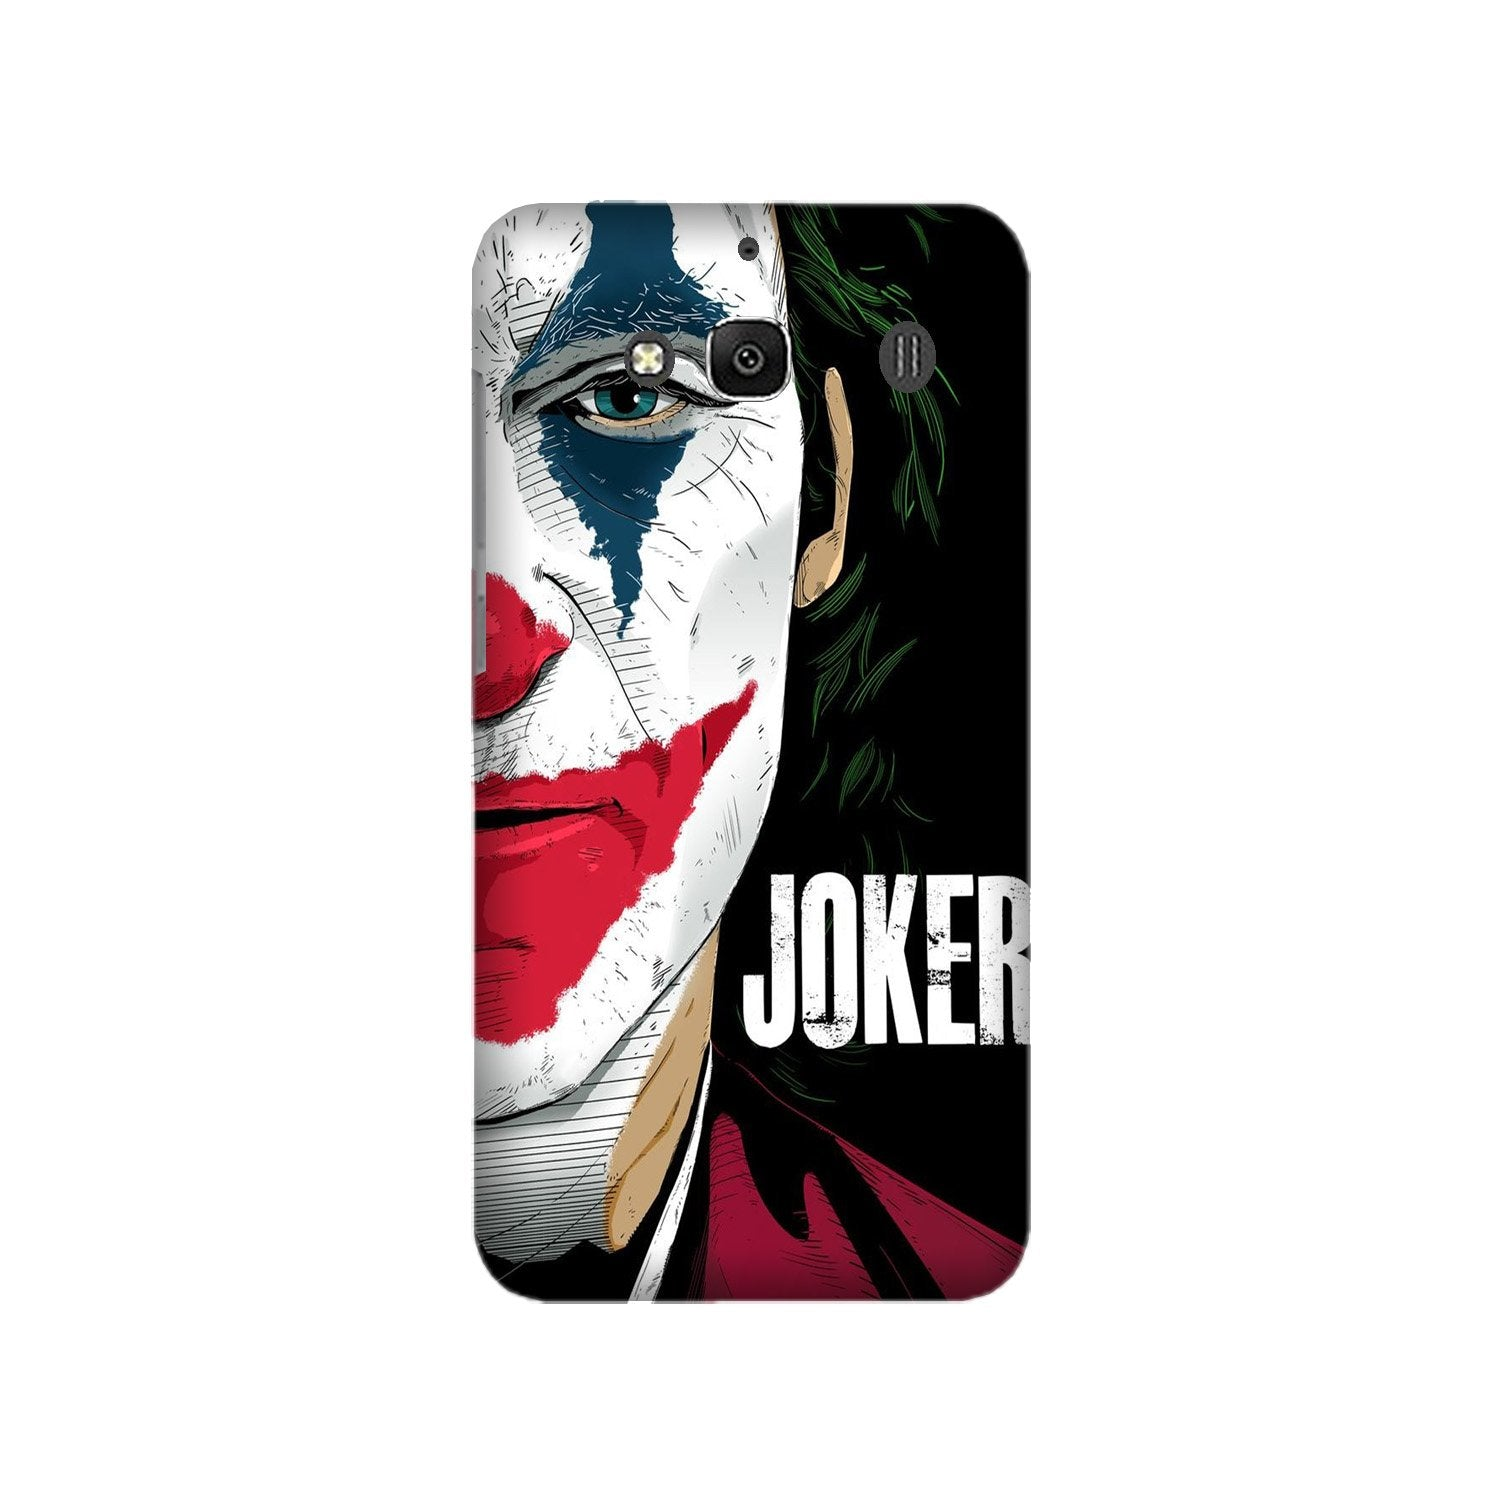 Joker Mobile Back Case for Redmi 2 Prime  (Design - 301)